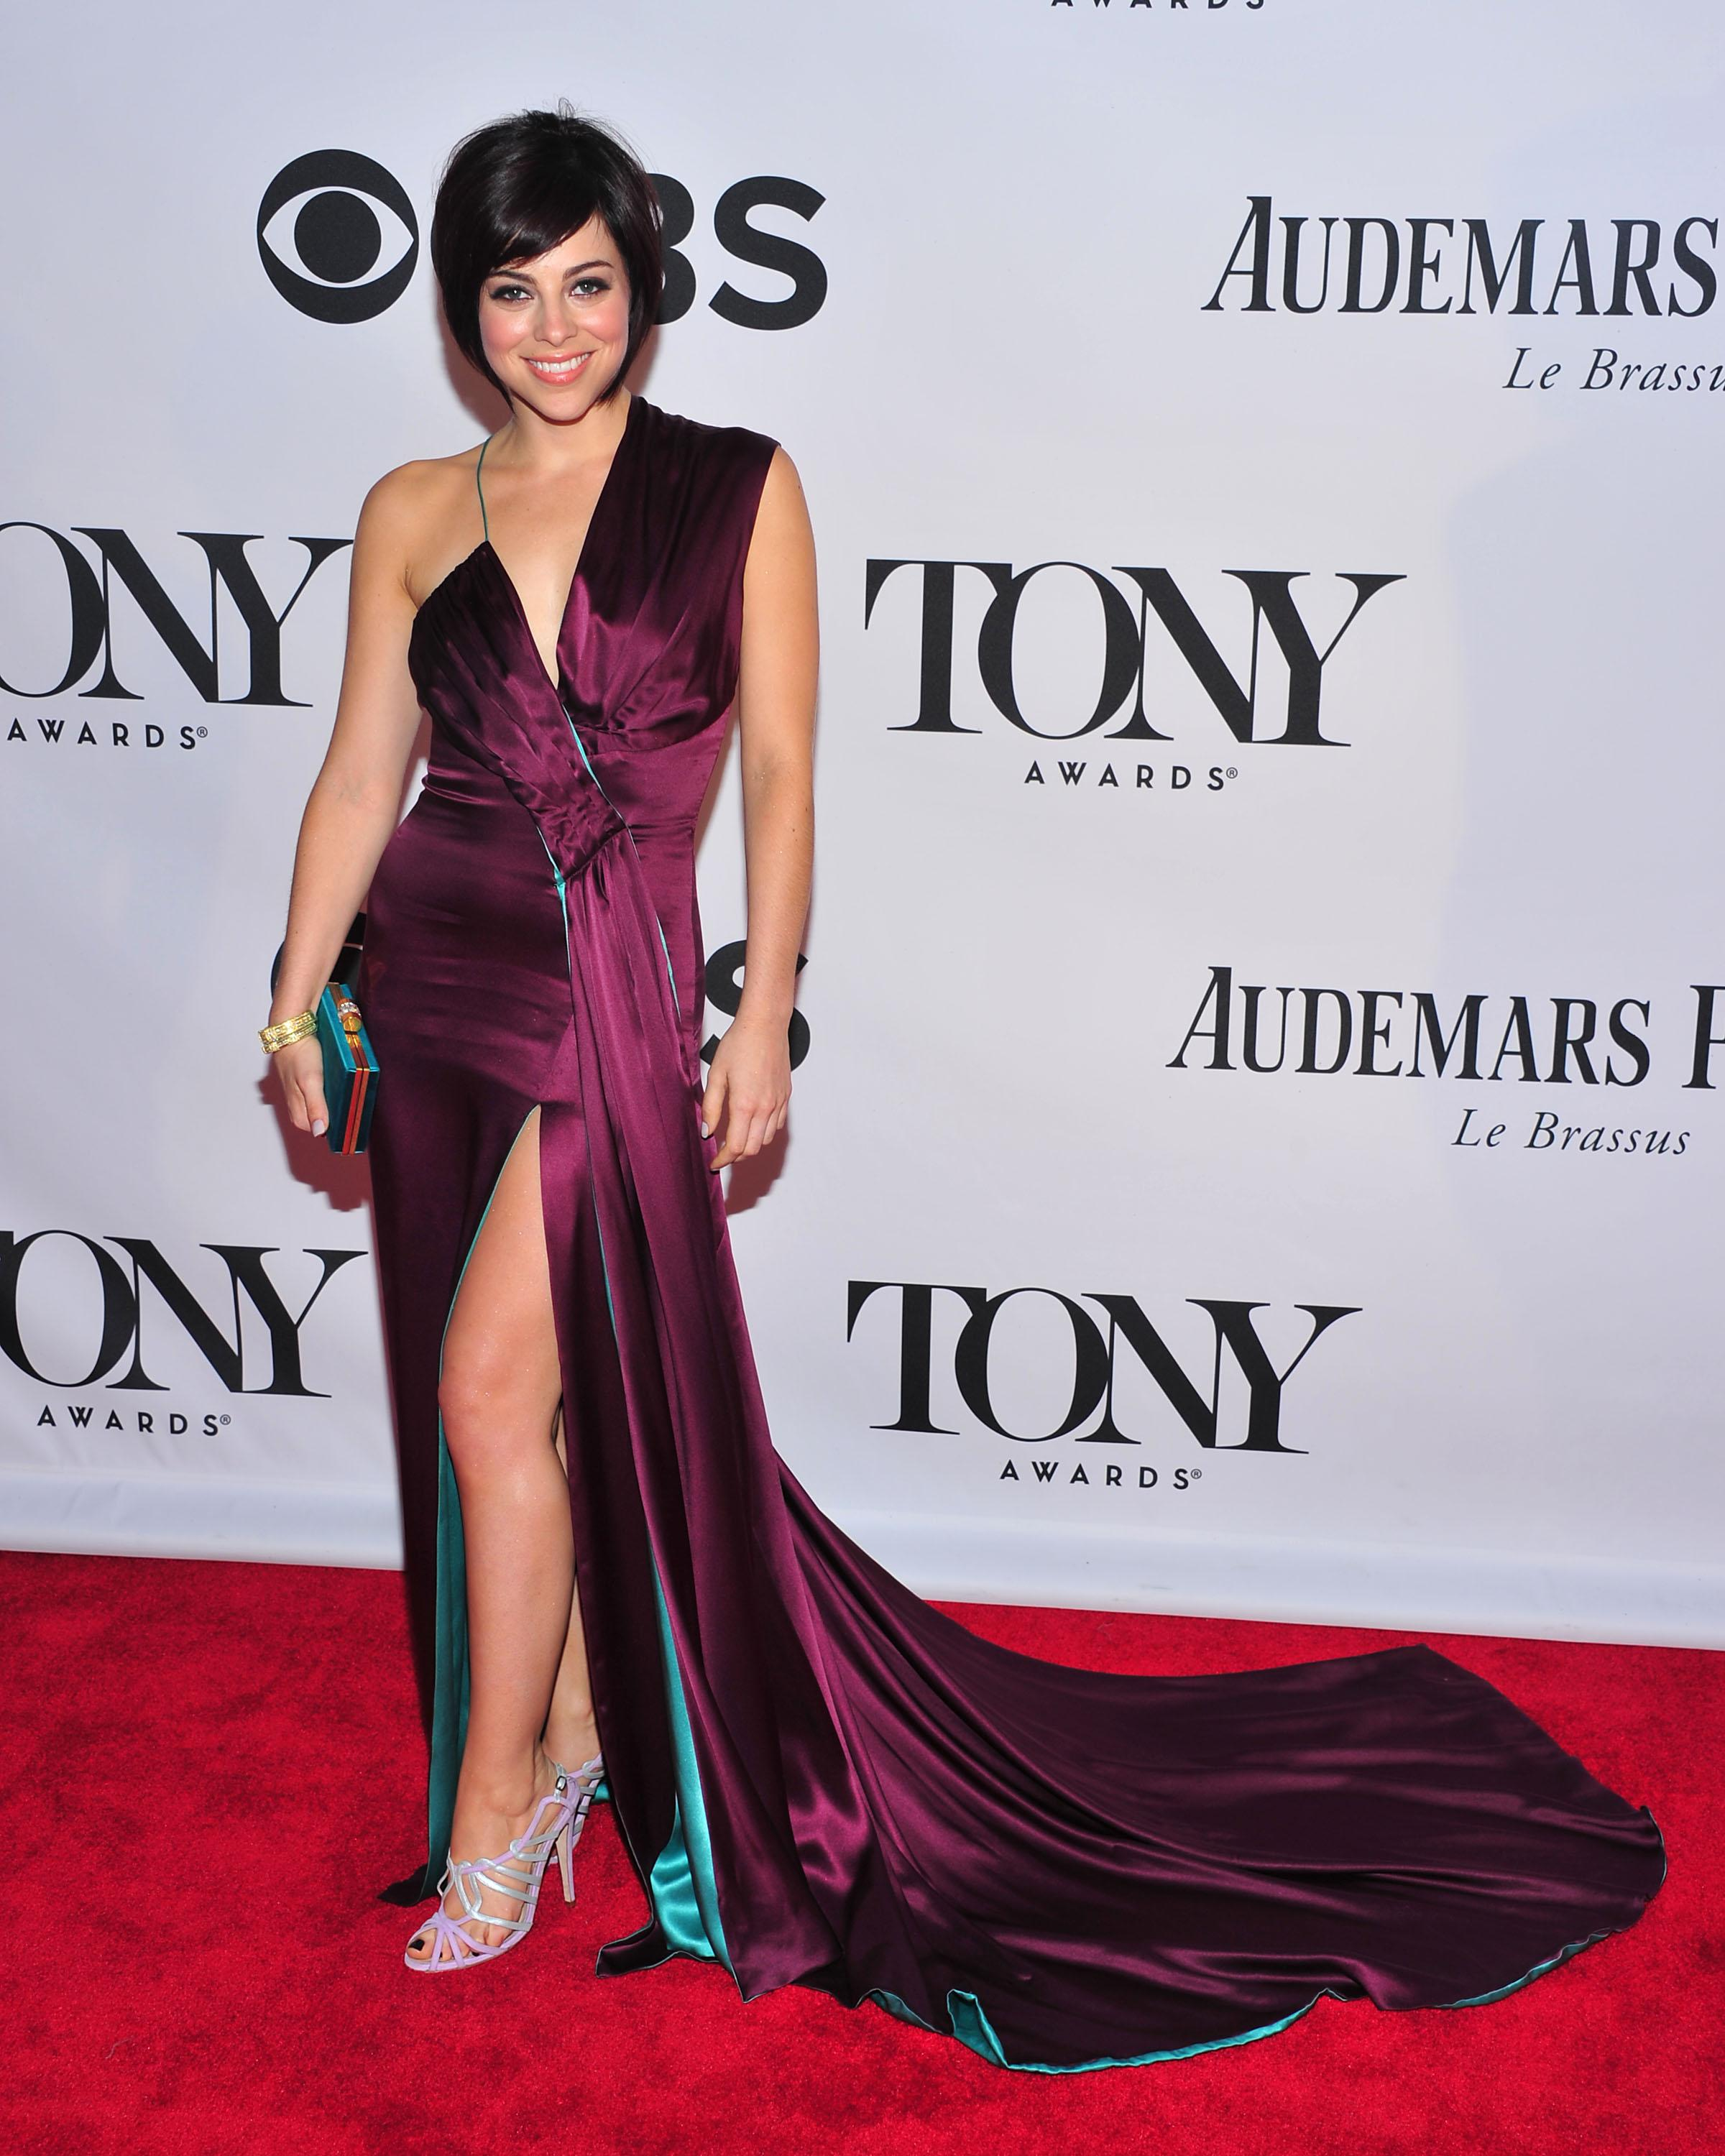 Krysta Rodriguez nudes (74 foto and video), Tits, Leaked, Twitter, cameltoe 2017